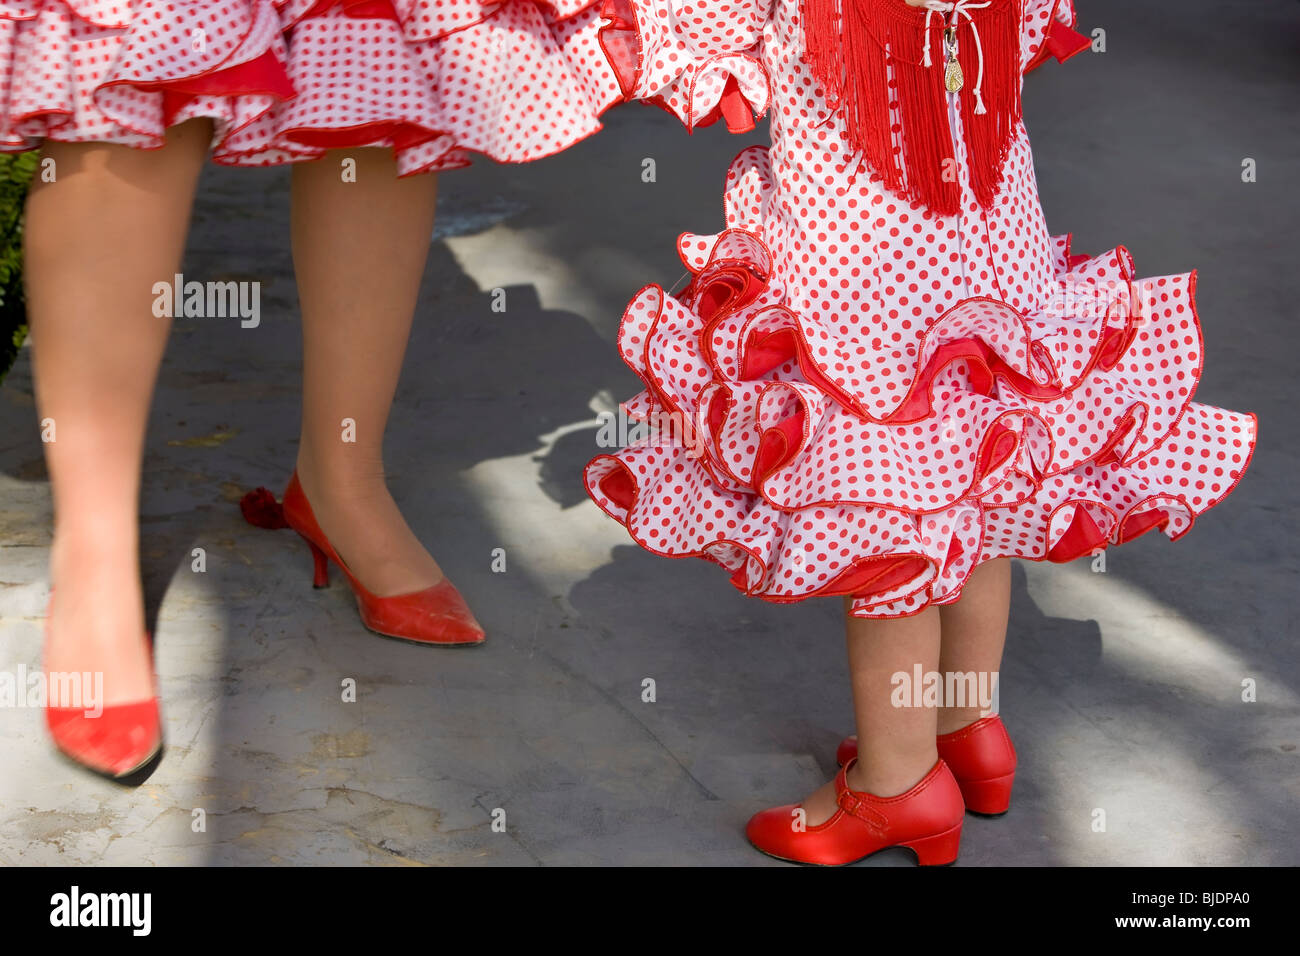 Flamenco dancing, Andalucia, Spain - Stock Image